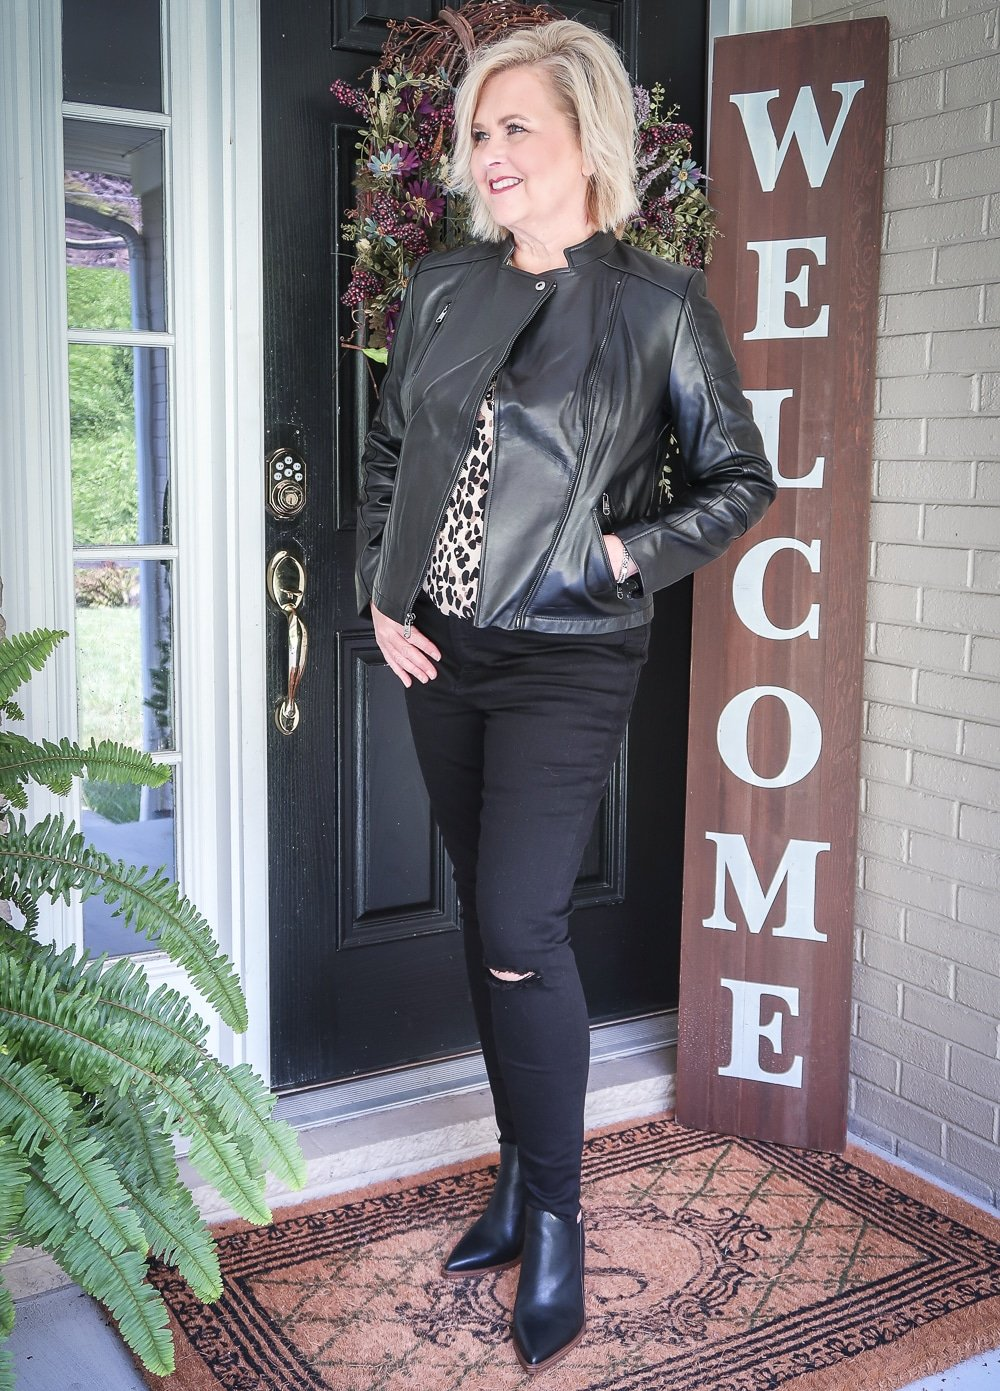 Fashion Blogger 50 Is Not Old is wearing a leopard print statement top, a black moto jacket, and a pair of black distressed jeans by Madewell